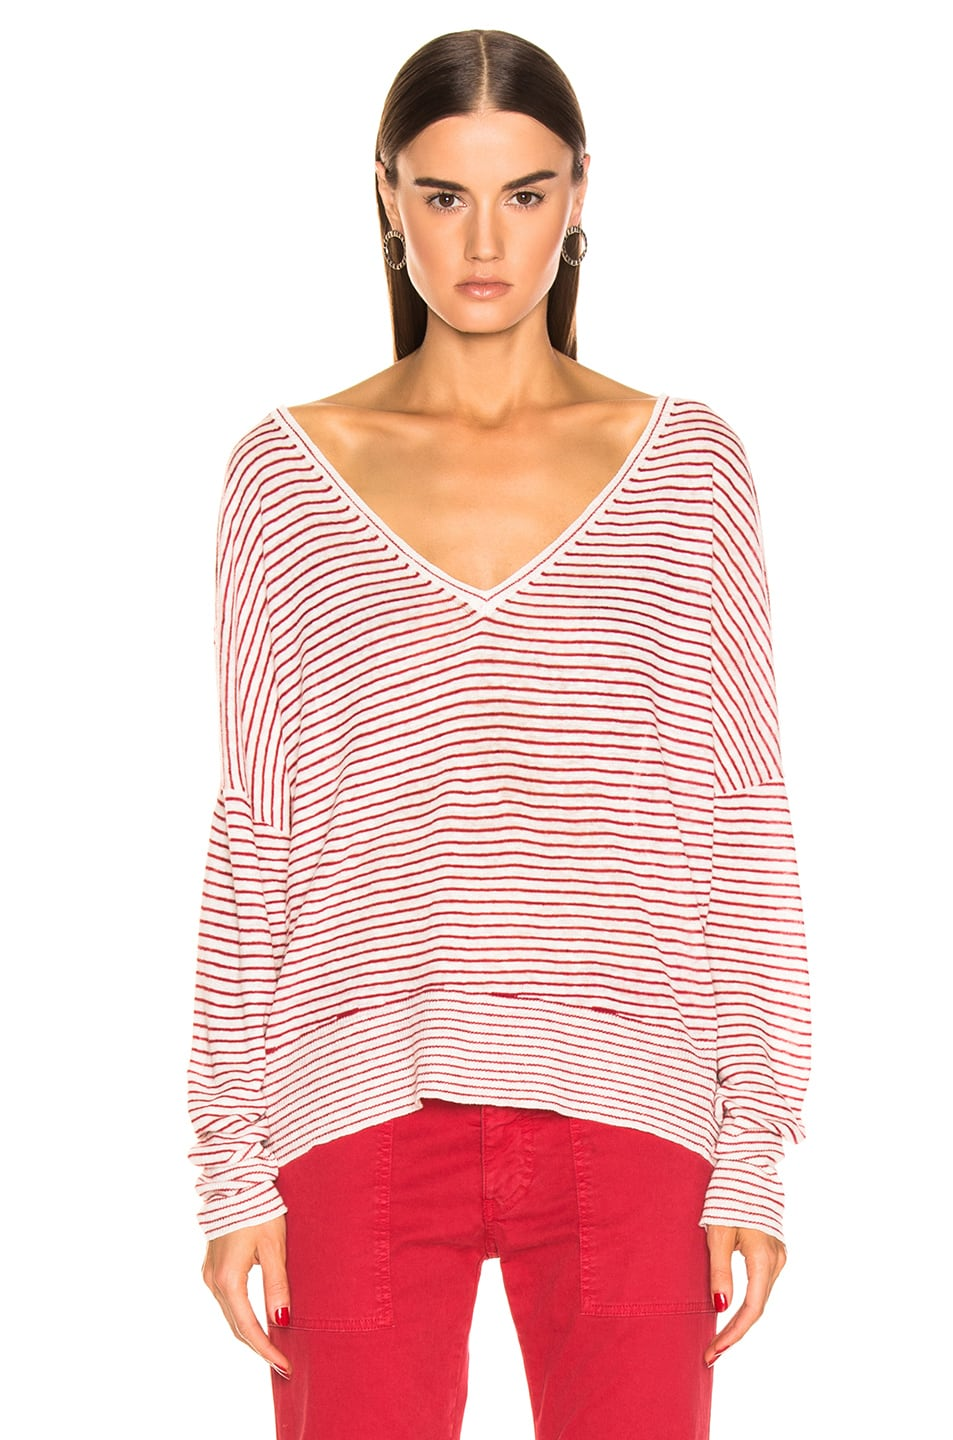 Image 2 of NILI LOTAN Maggie Sweater in Ivory & Red Stripe